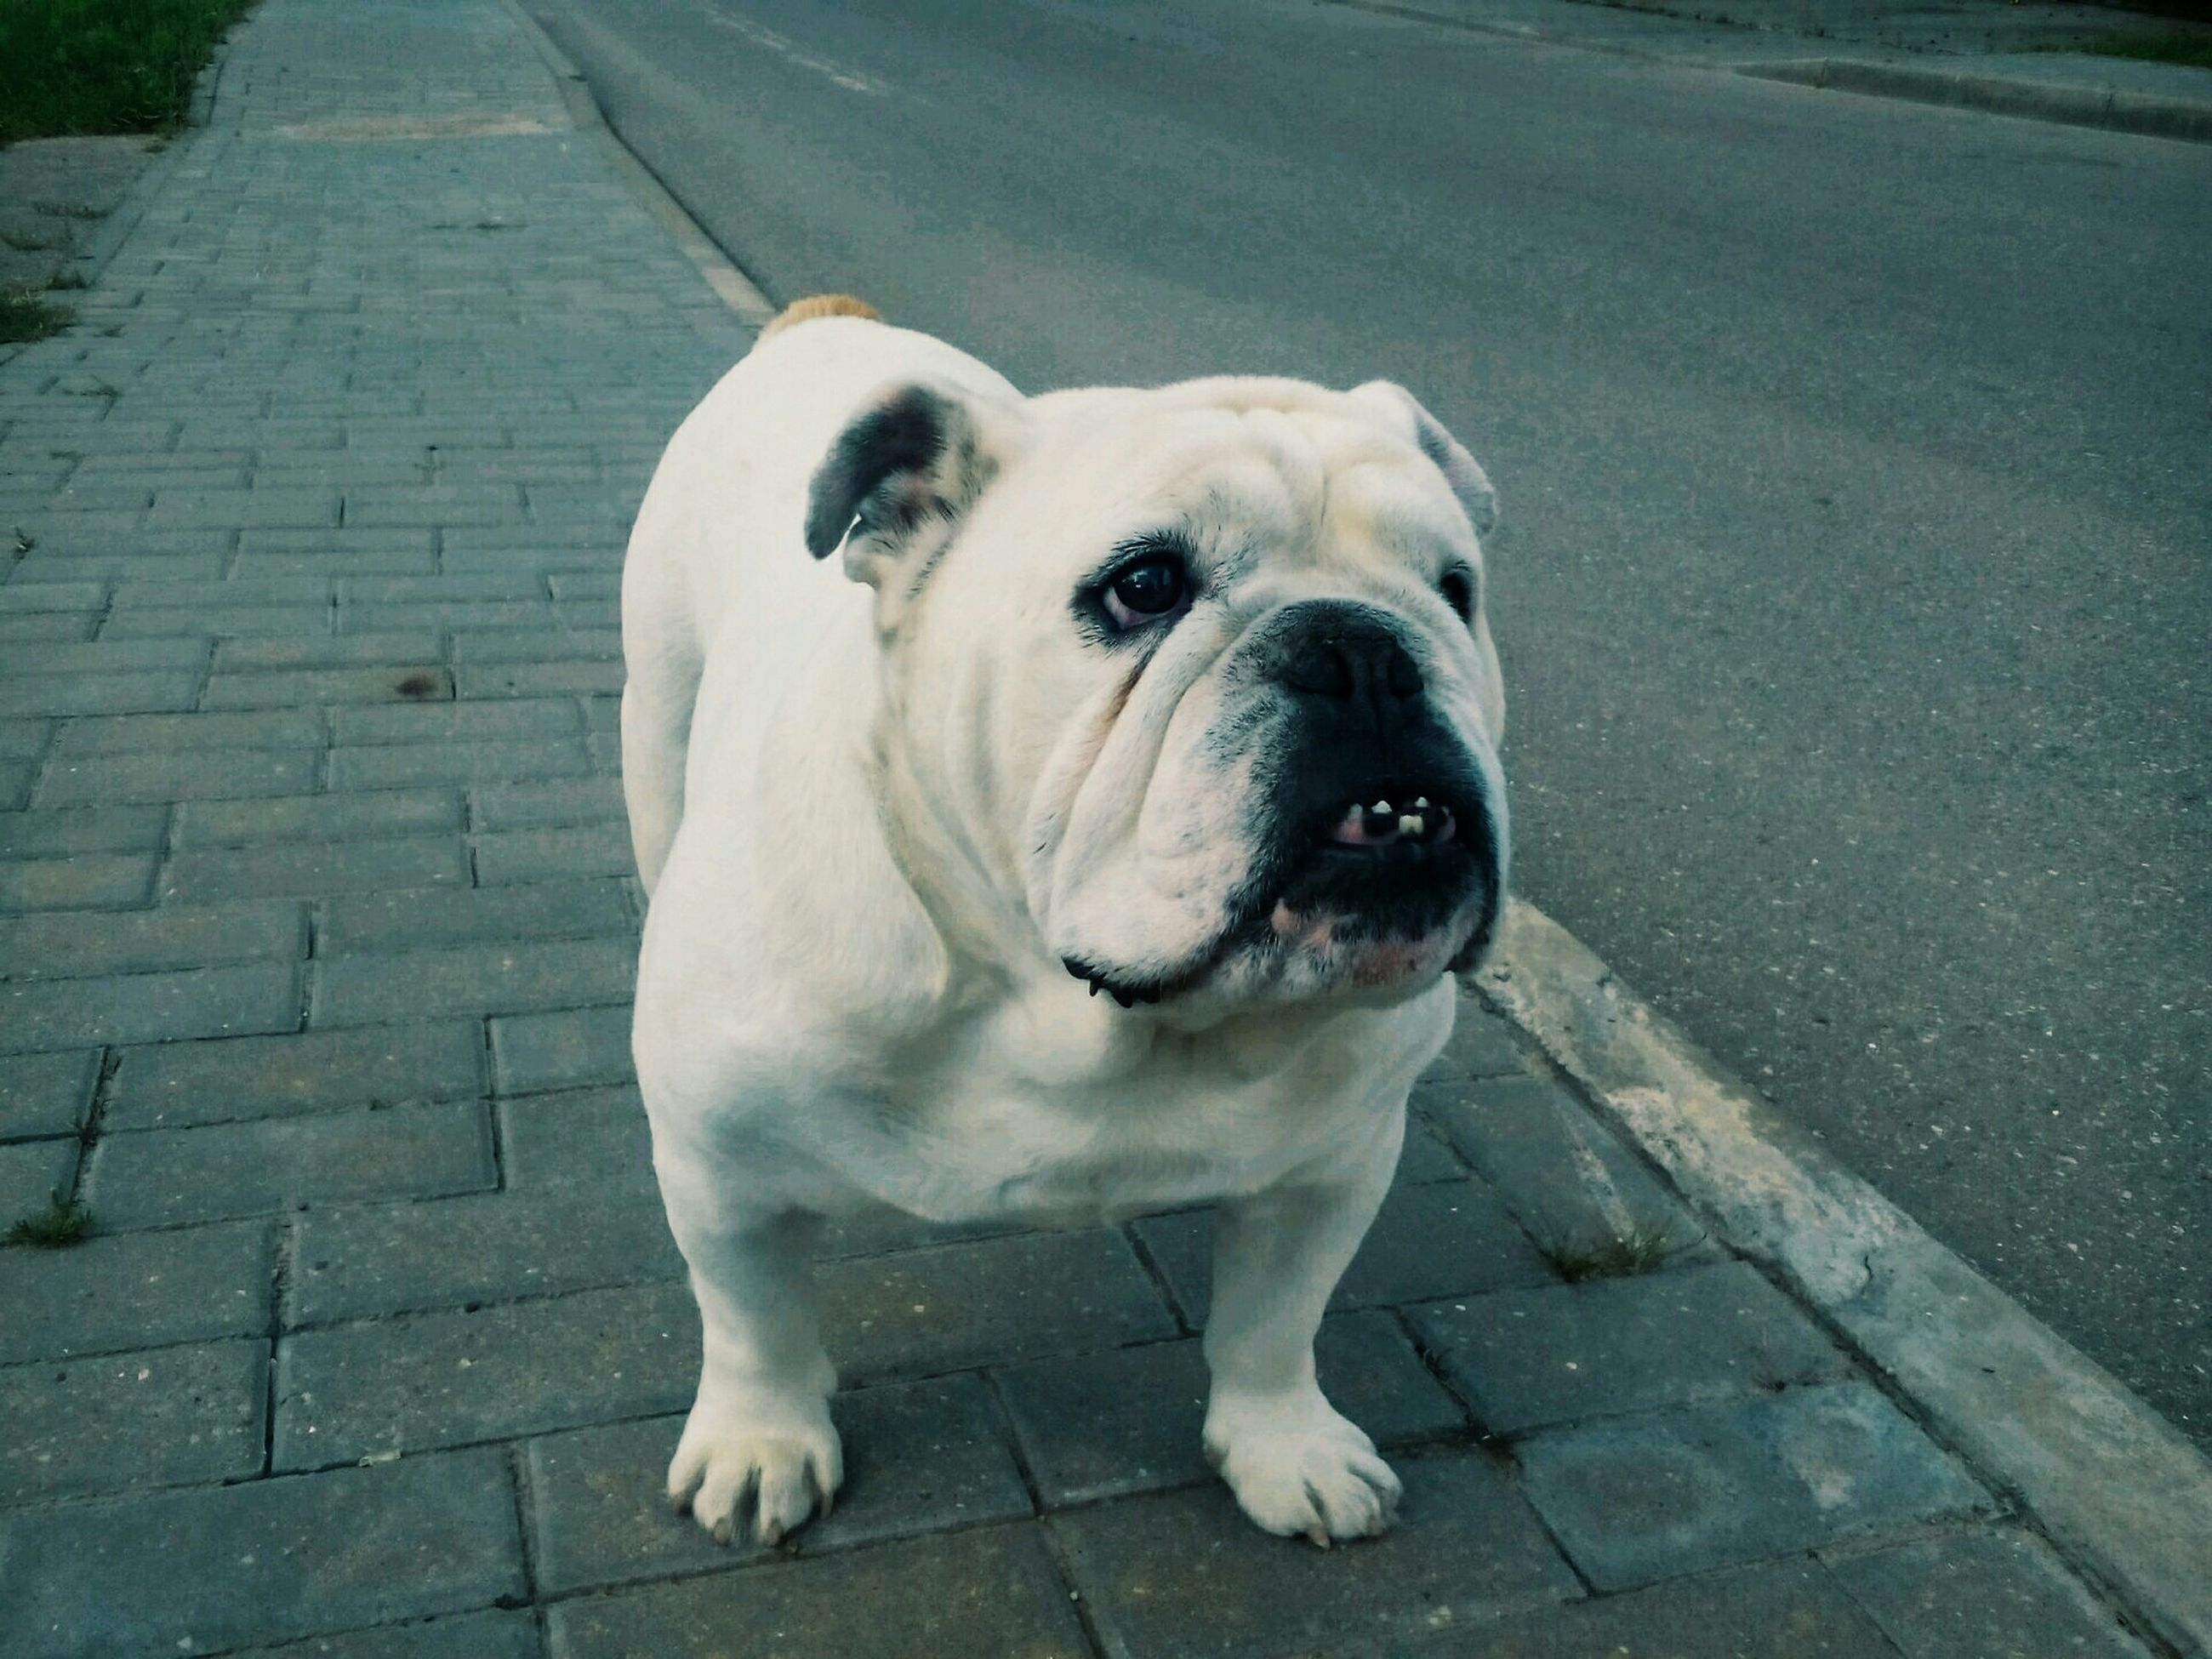 one animal, animal themes, pets, dog, domestic animals, mammal, portrait, high angle view, looking at camera, street, white color, footpath, sidewalk, close-up, animal head, outdoors, cobblestone, sitting, day